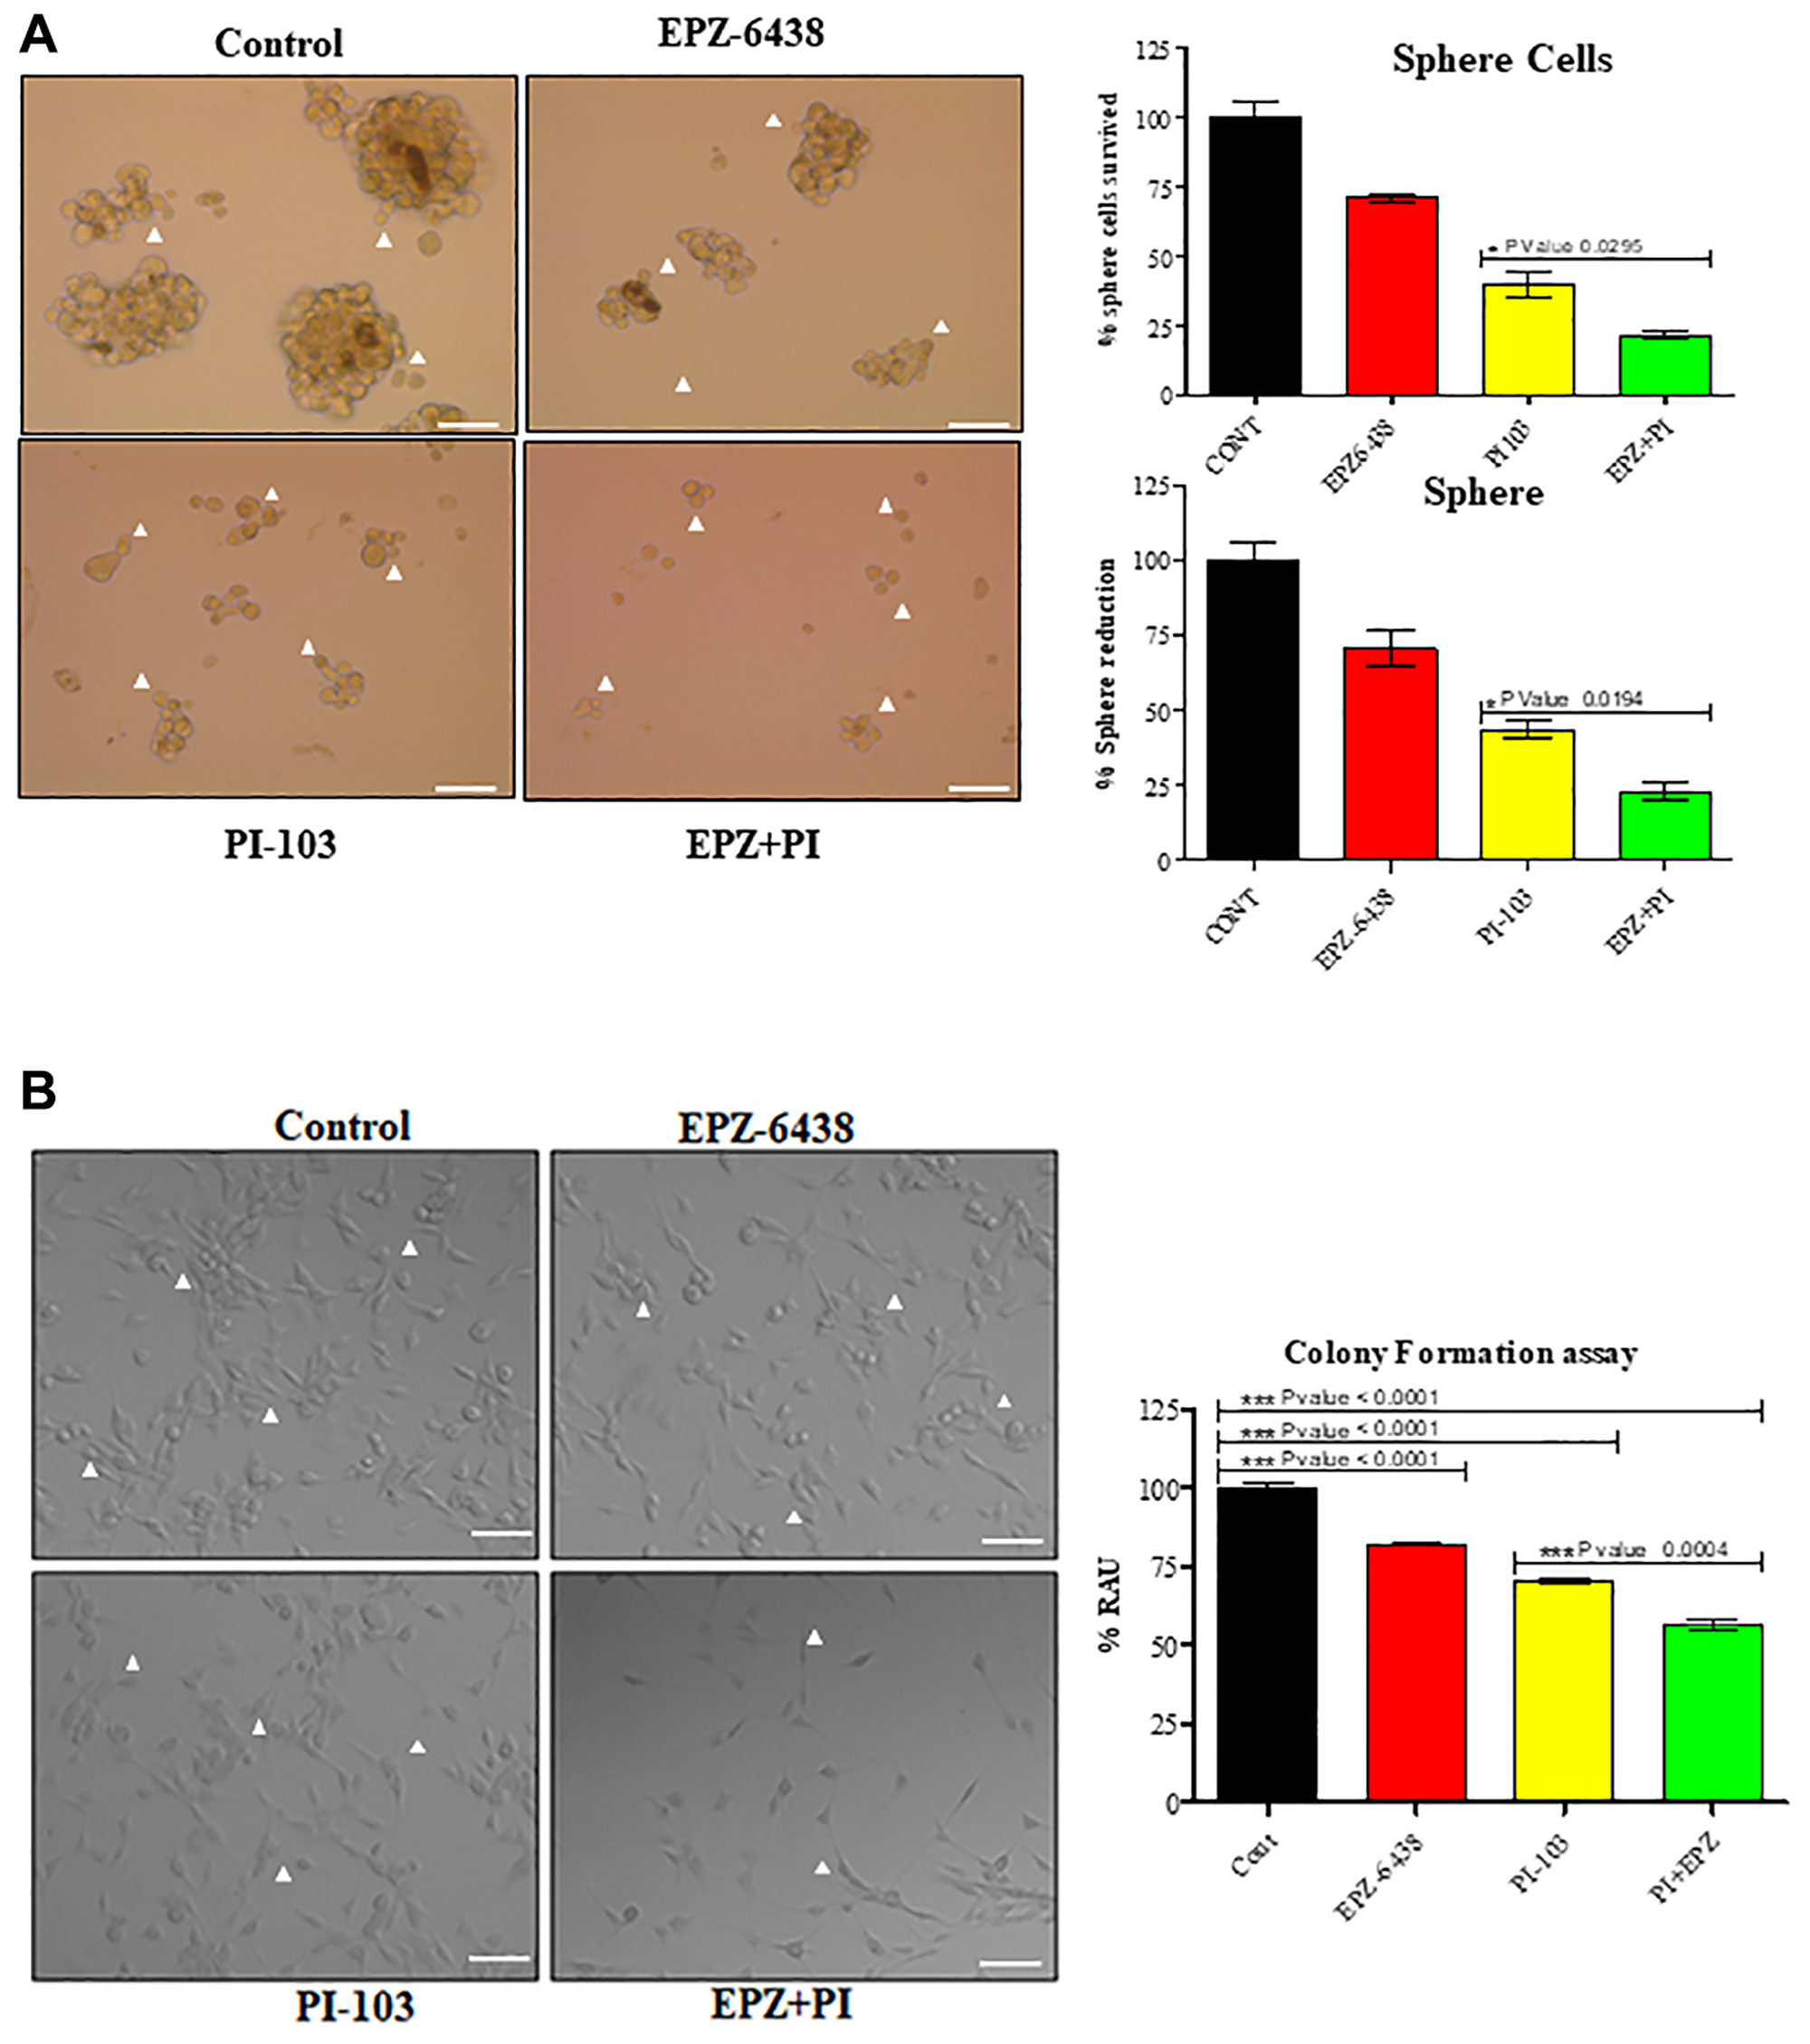 EPZ-6438 and PI-103 combination affect the stemness properties of GBM U-87 cells.